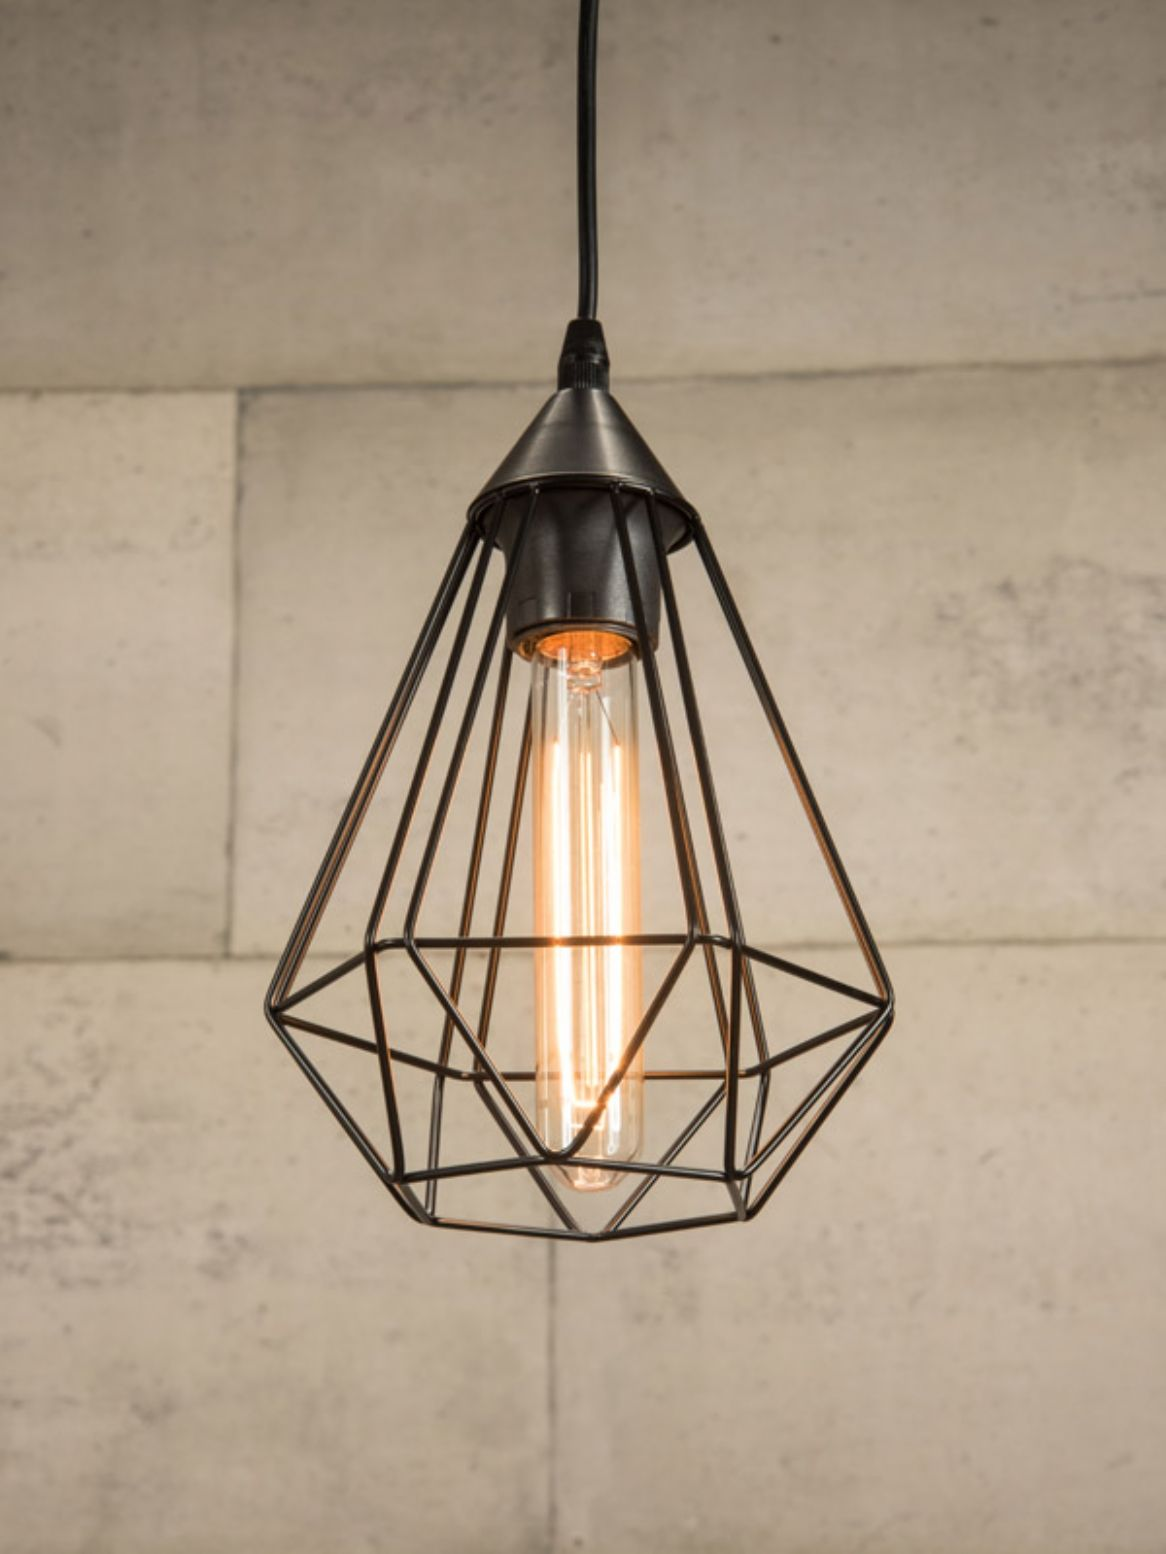 Black Wire Cage Pendant Light | Depa dani | Pinterest | Pendant ...